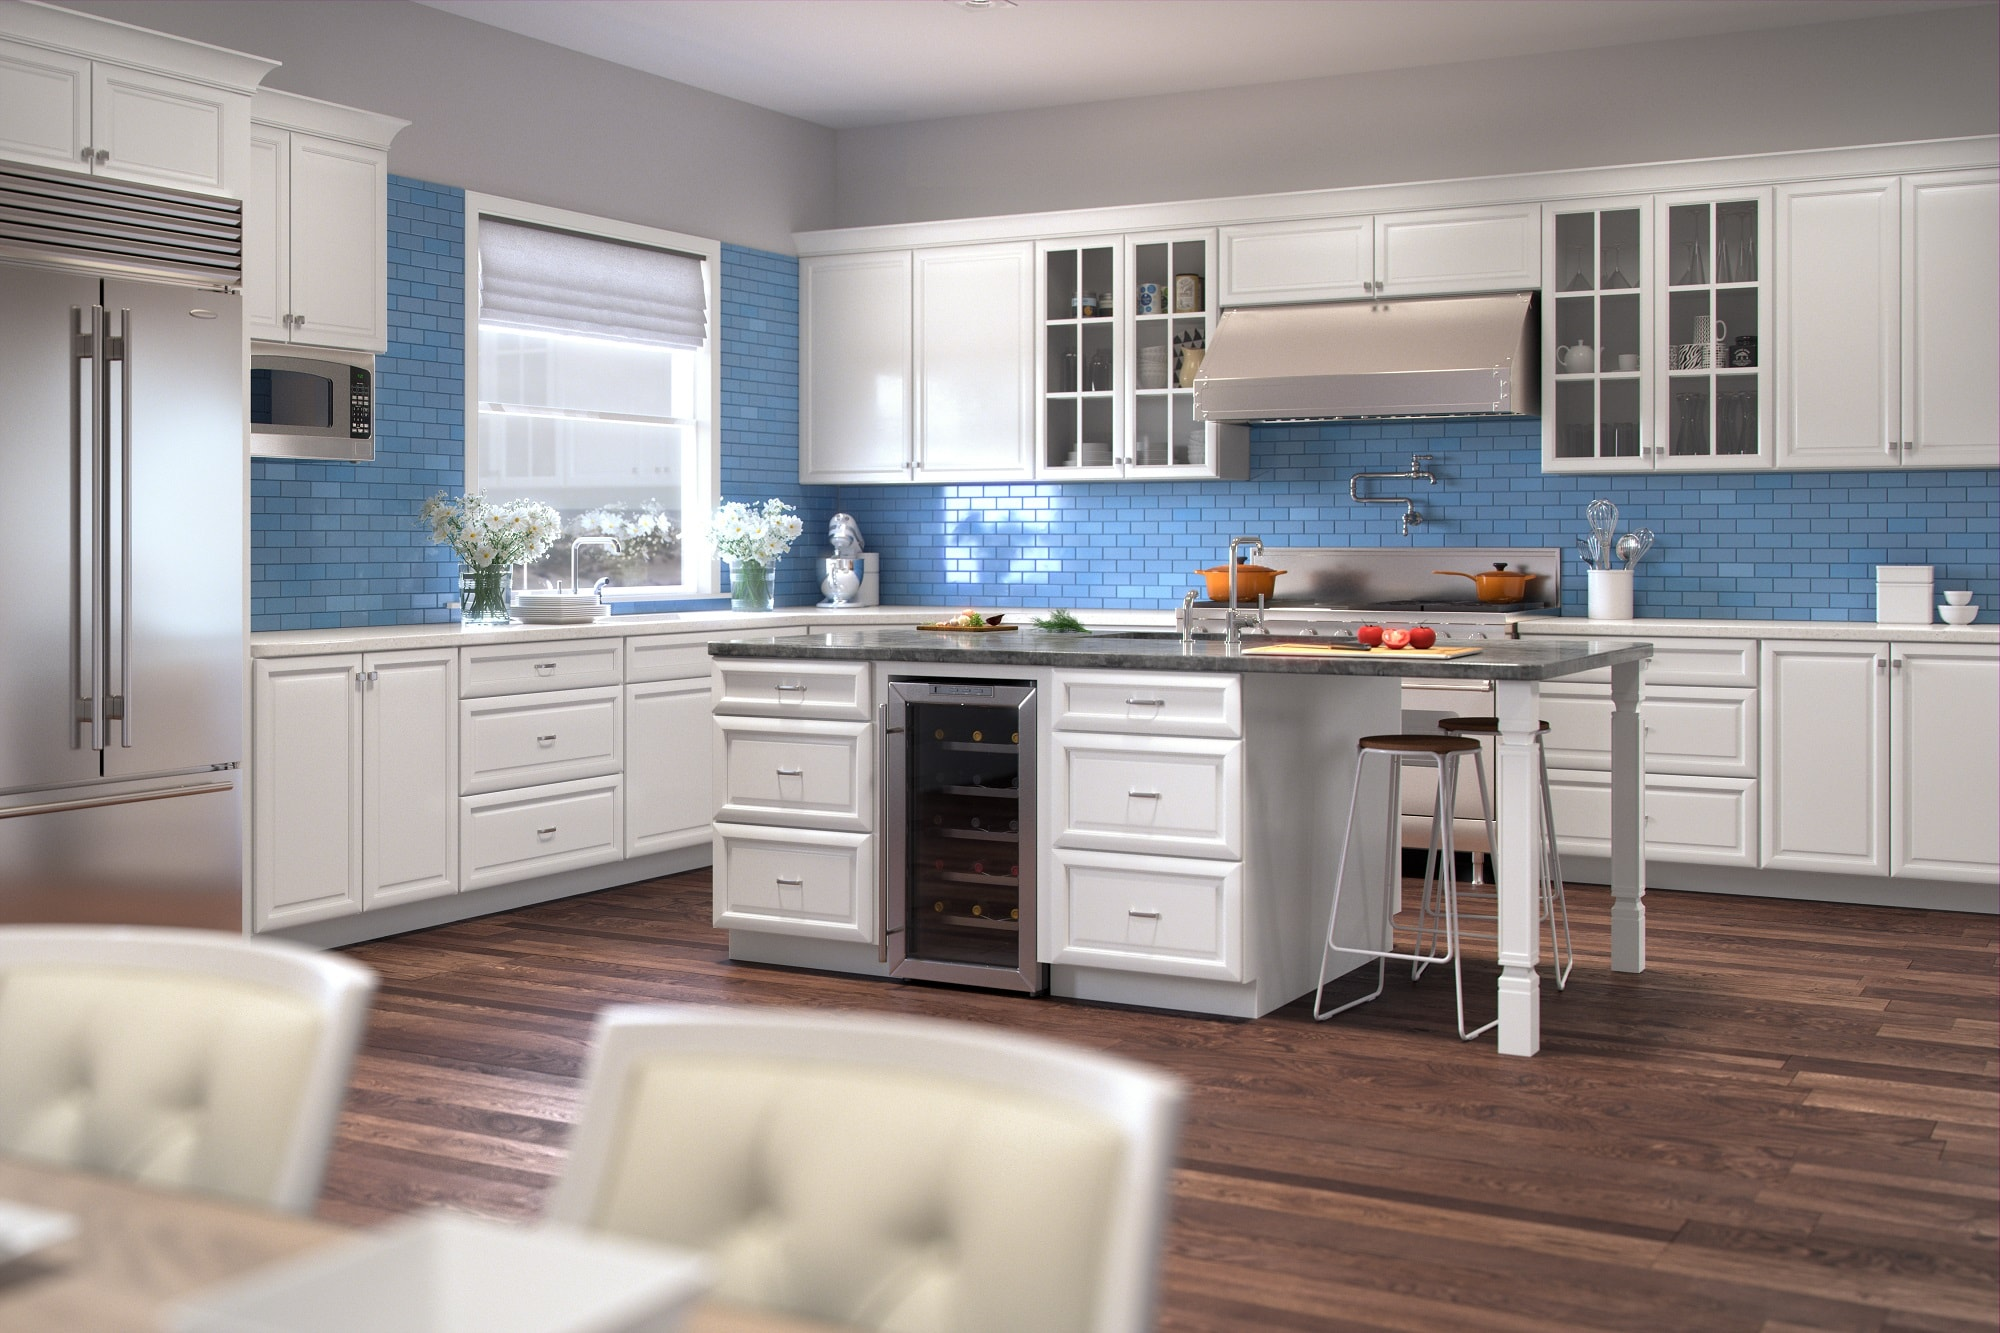 Regency%2520White%2520Kitchen%2520Cabinets